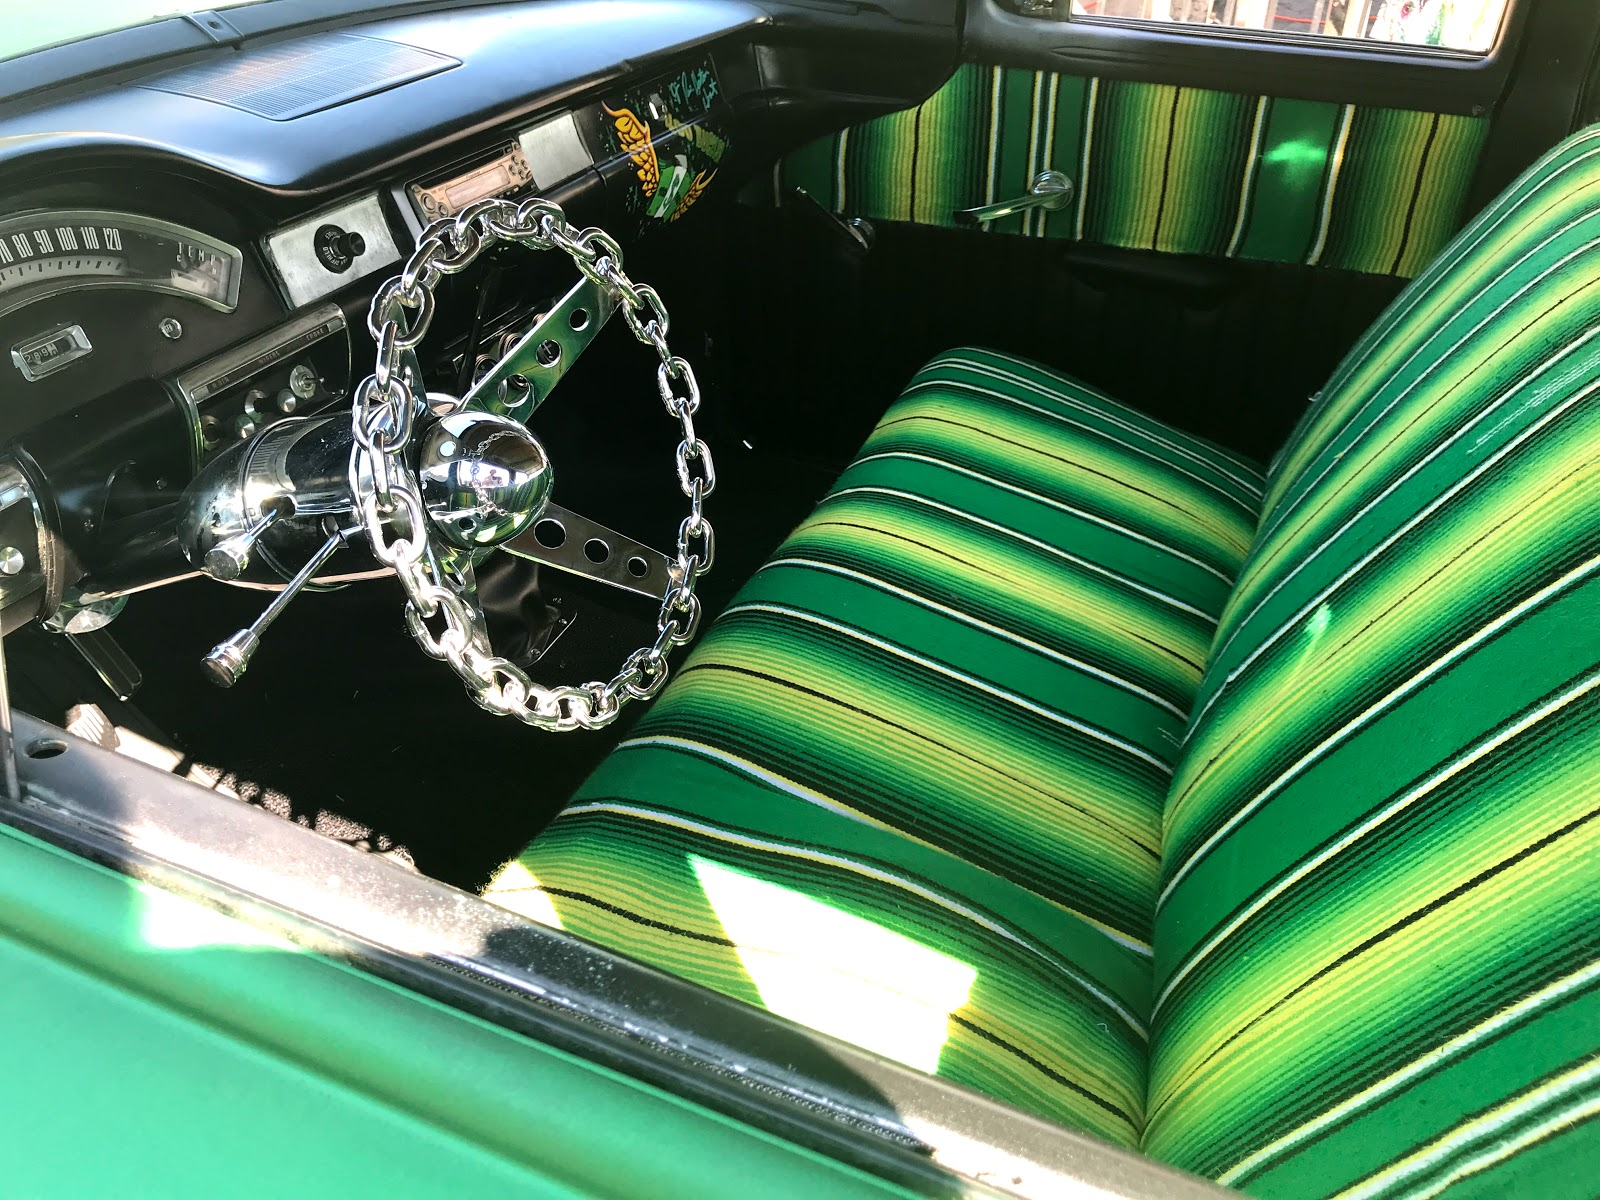 Image;Woman looking and showing the inside of a vintage car at the Dallas Car Show in Deep Ellum